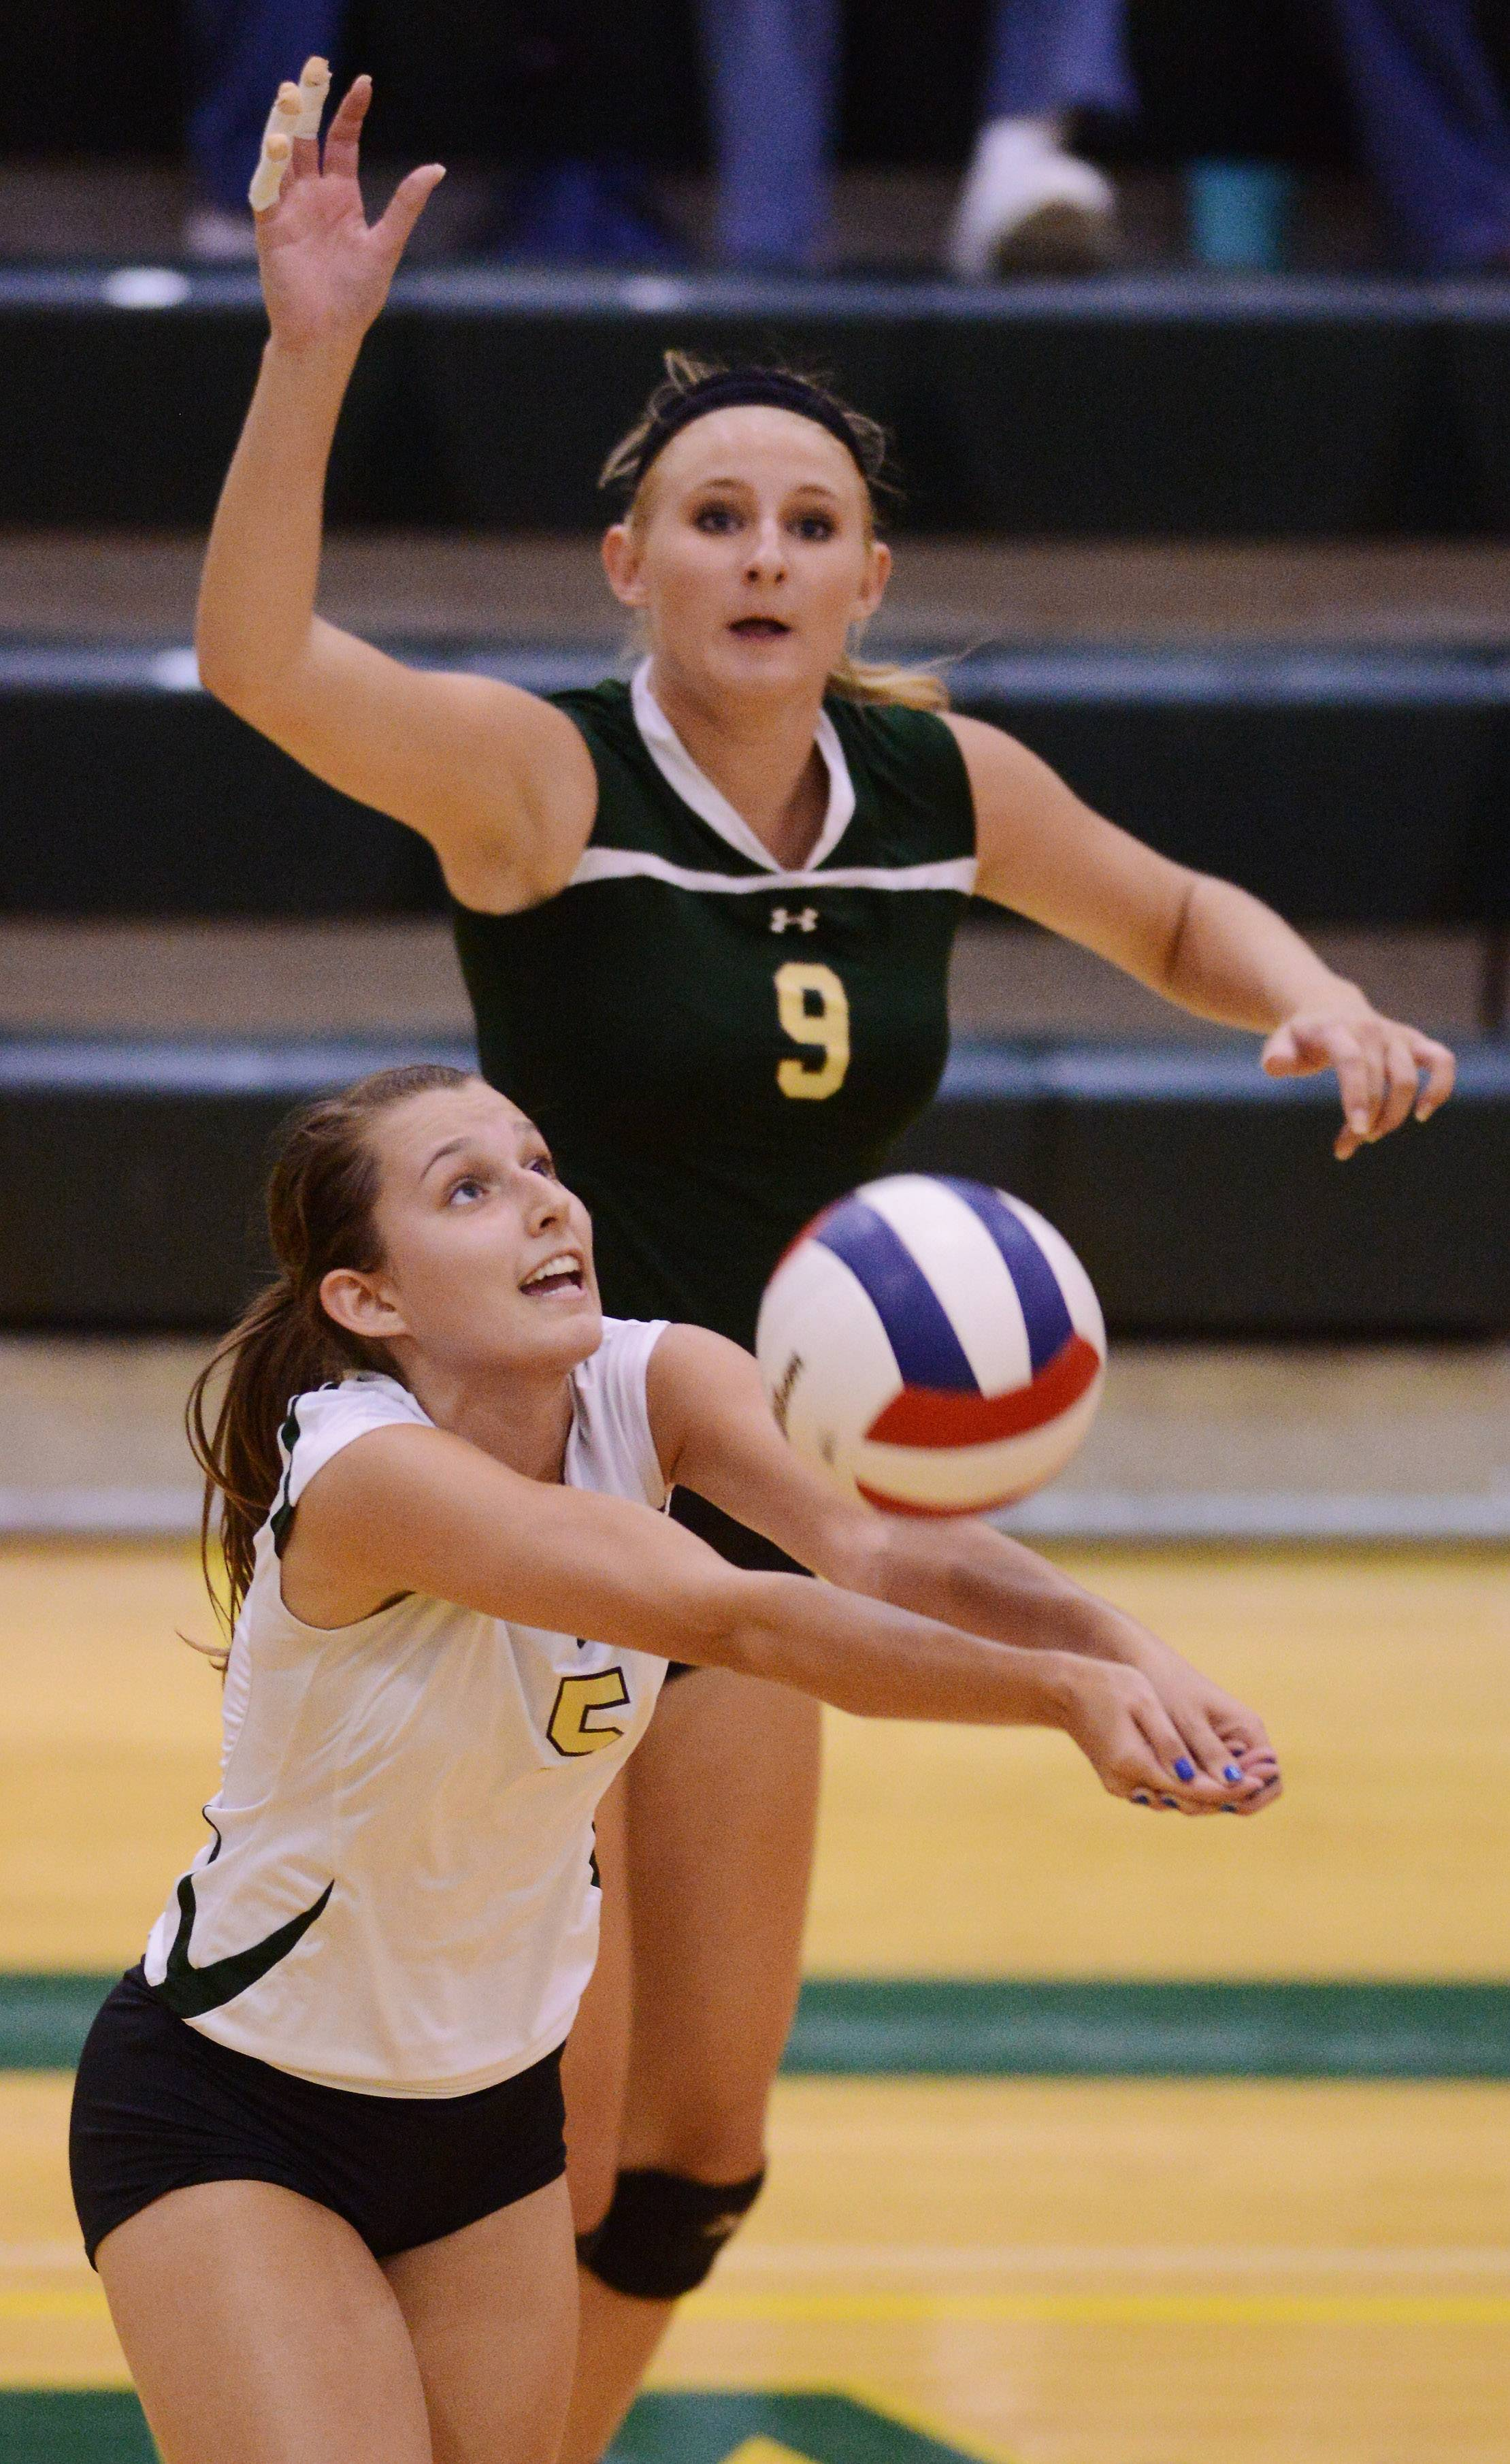 Fremd's Aubrey Stegich gets a dig as teammate Hope Schroeder gets ready for a kill during Tuesday's volleyball match with Hersey.